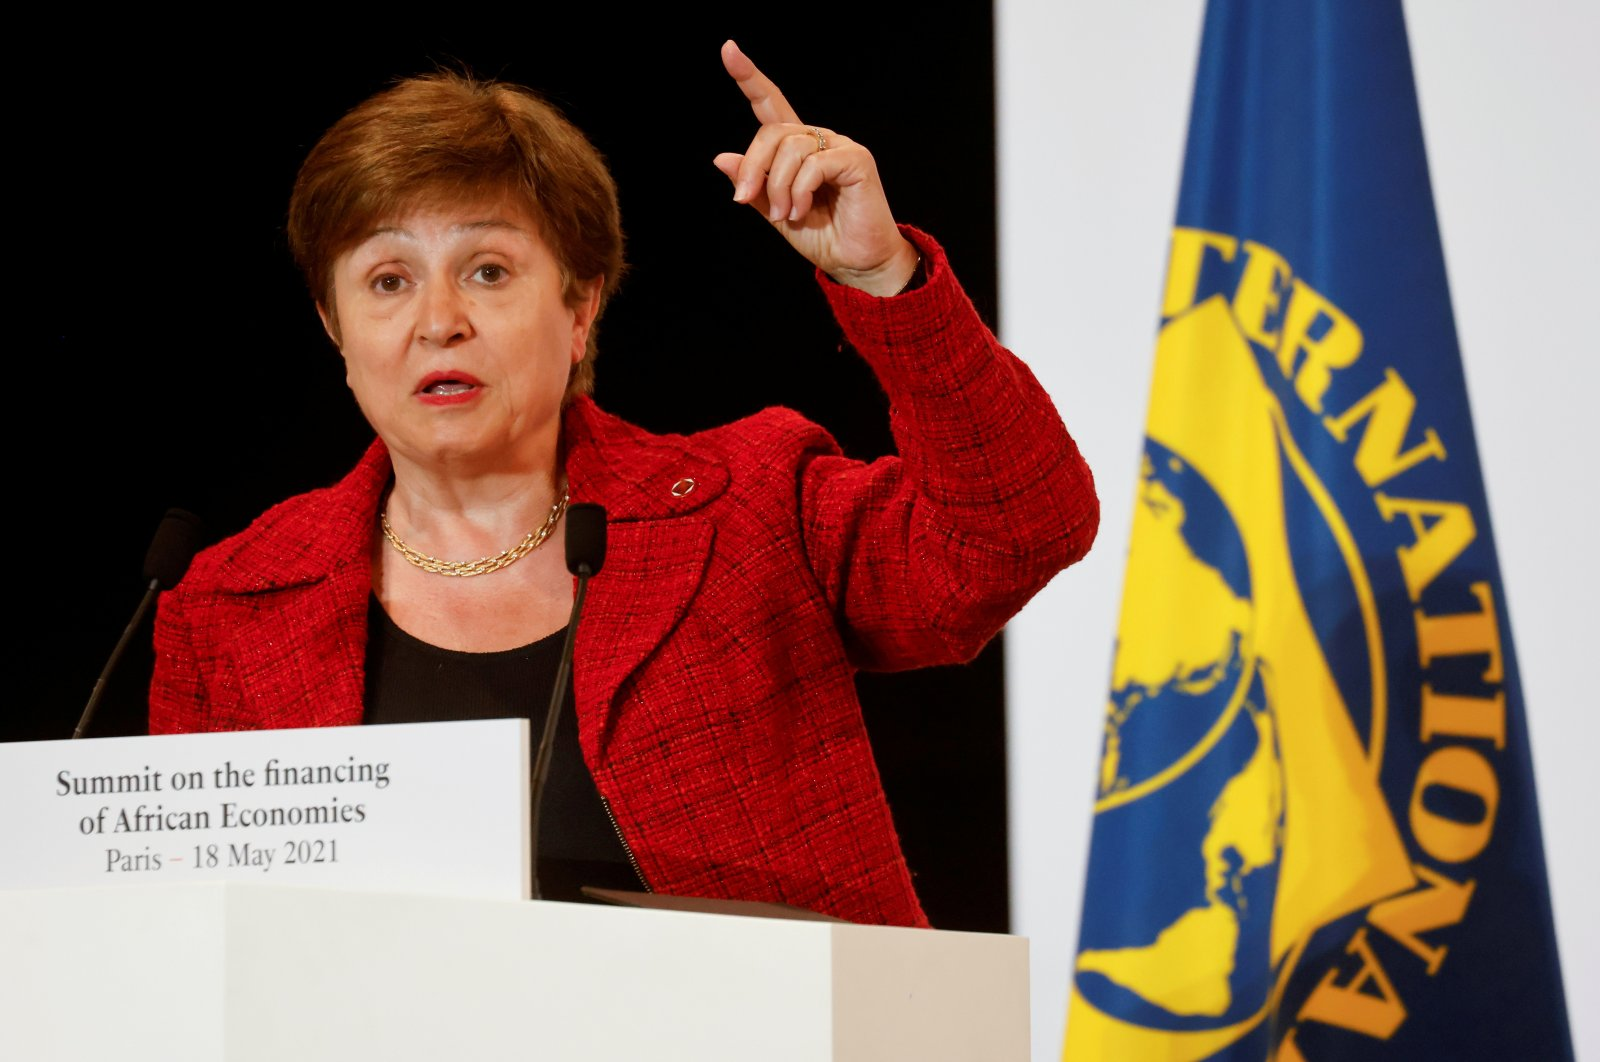 International Monetary Fund (IMF) Managing Director Kristalina Georgieva speaks during a joint news conference at the end of the Summit on Financing of African Economies in Paris, France, May 18, 2021. (Reuters Photo)